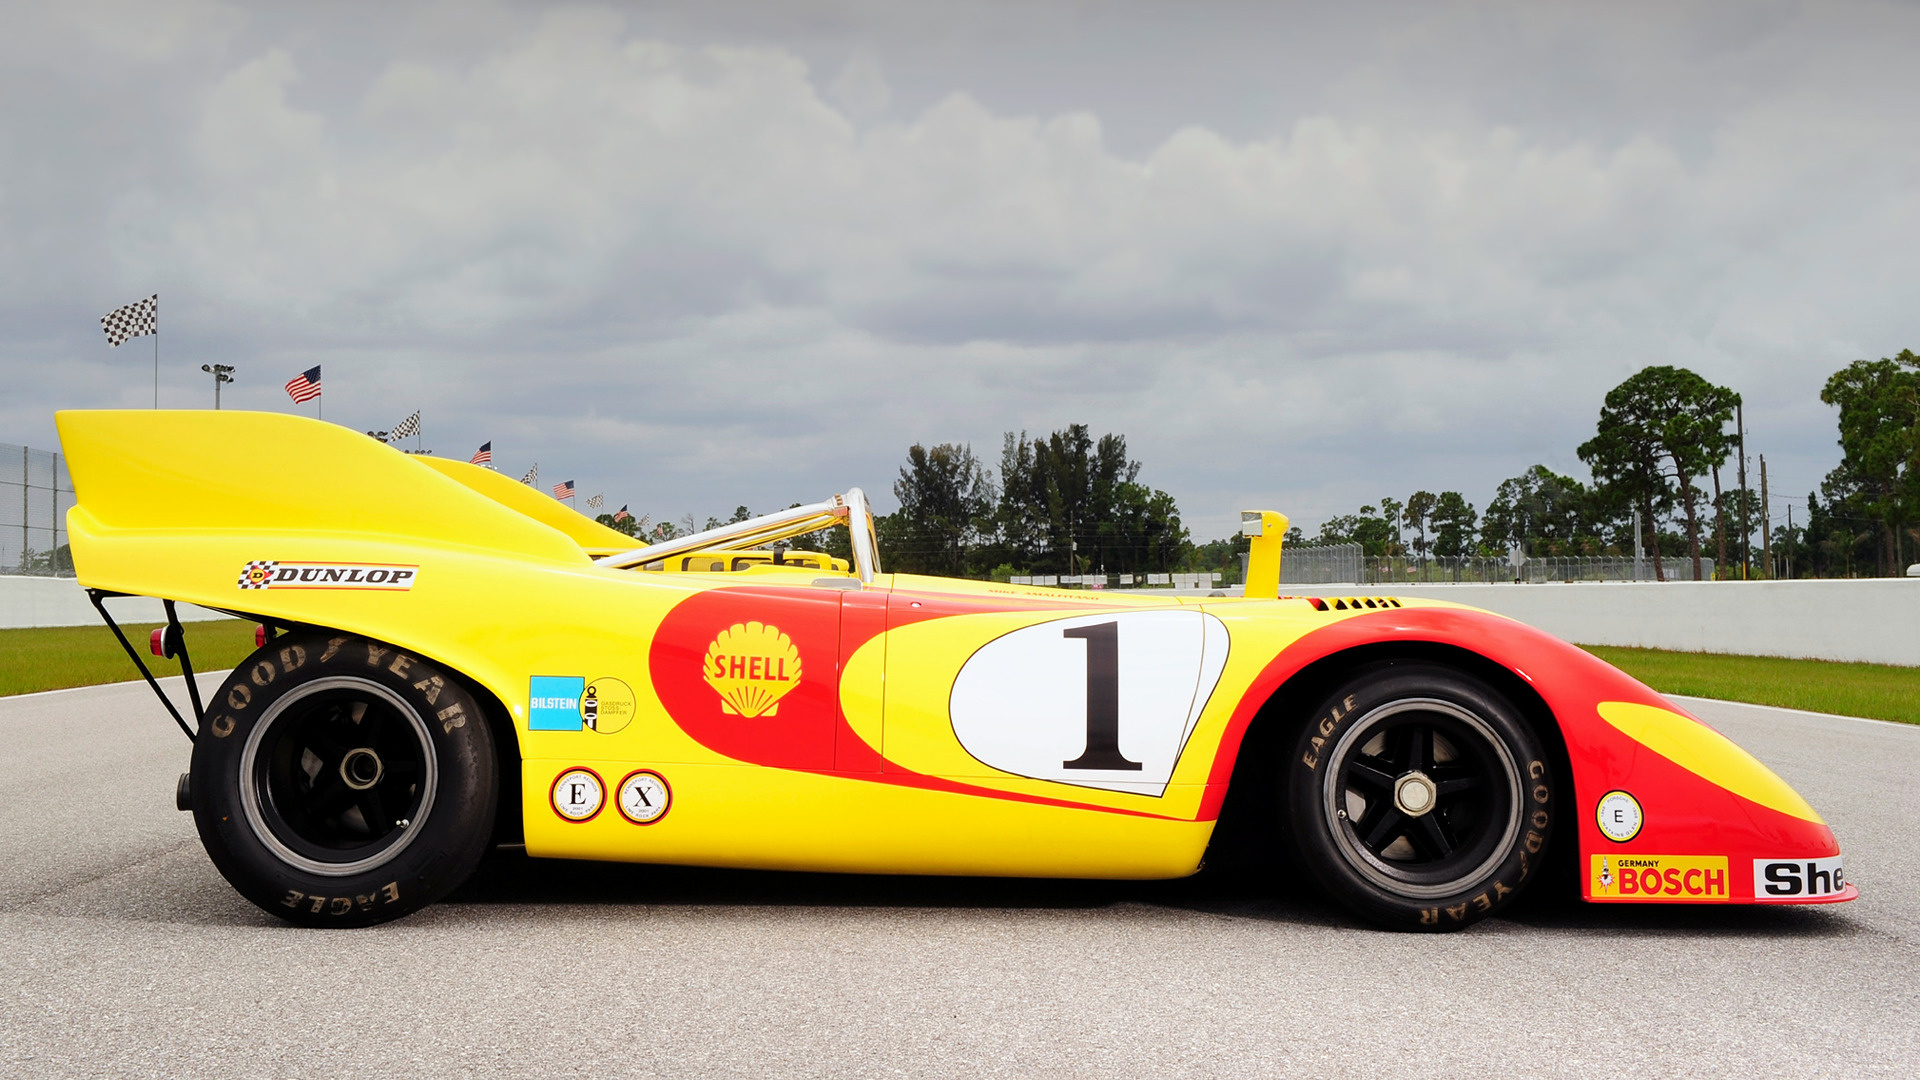 Nissan Erie Pa >> Porsche 917/10 Spyder Interserie (1972) Wallpapers and HD Images - Car Pixel